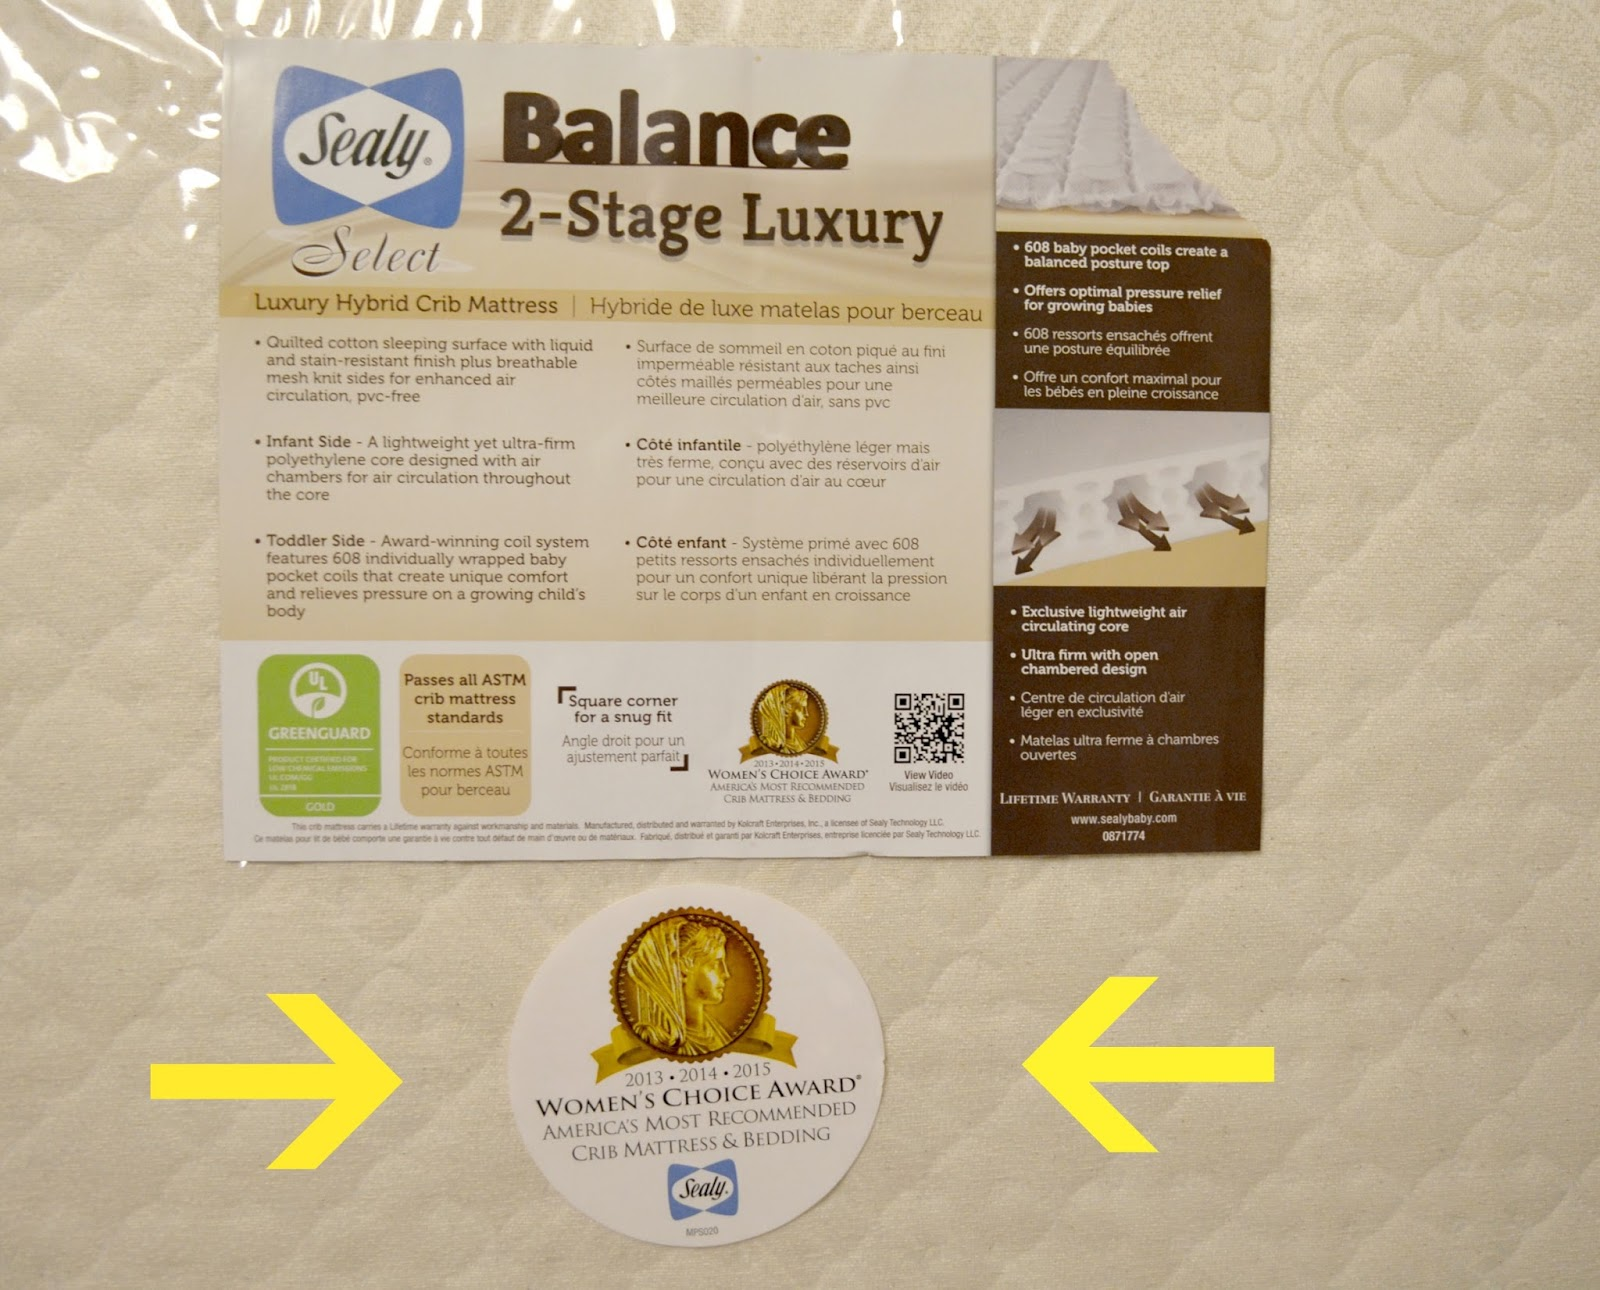 sealy crib mattress sealy soybean foamcore infant toddler crib sealy select balance 2stage luxury crib mattress combines coil and foam to create the - Sealy Crib Mattress